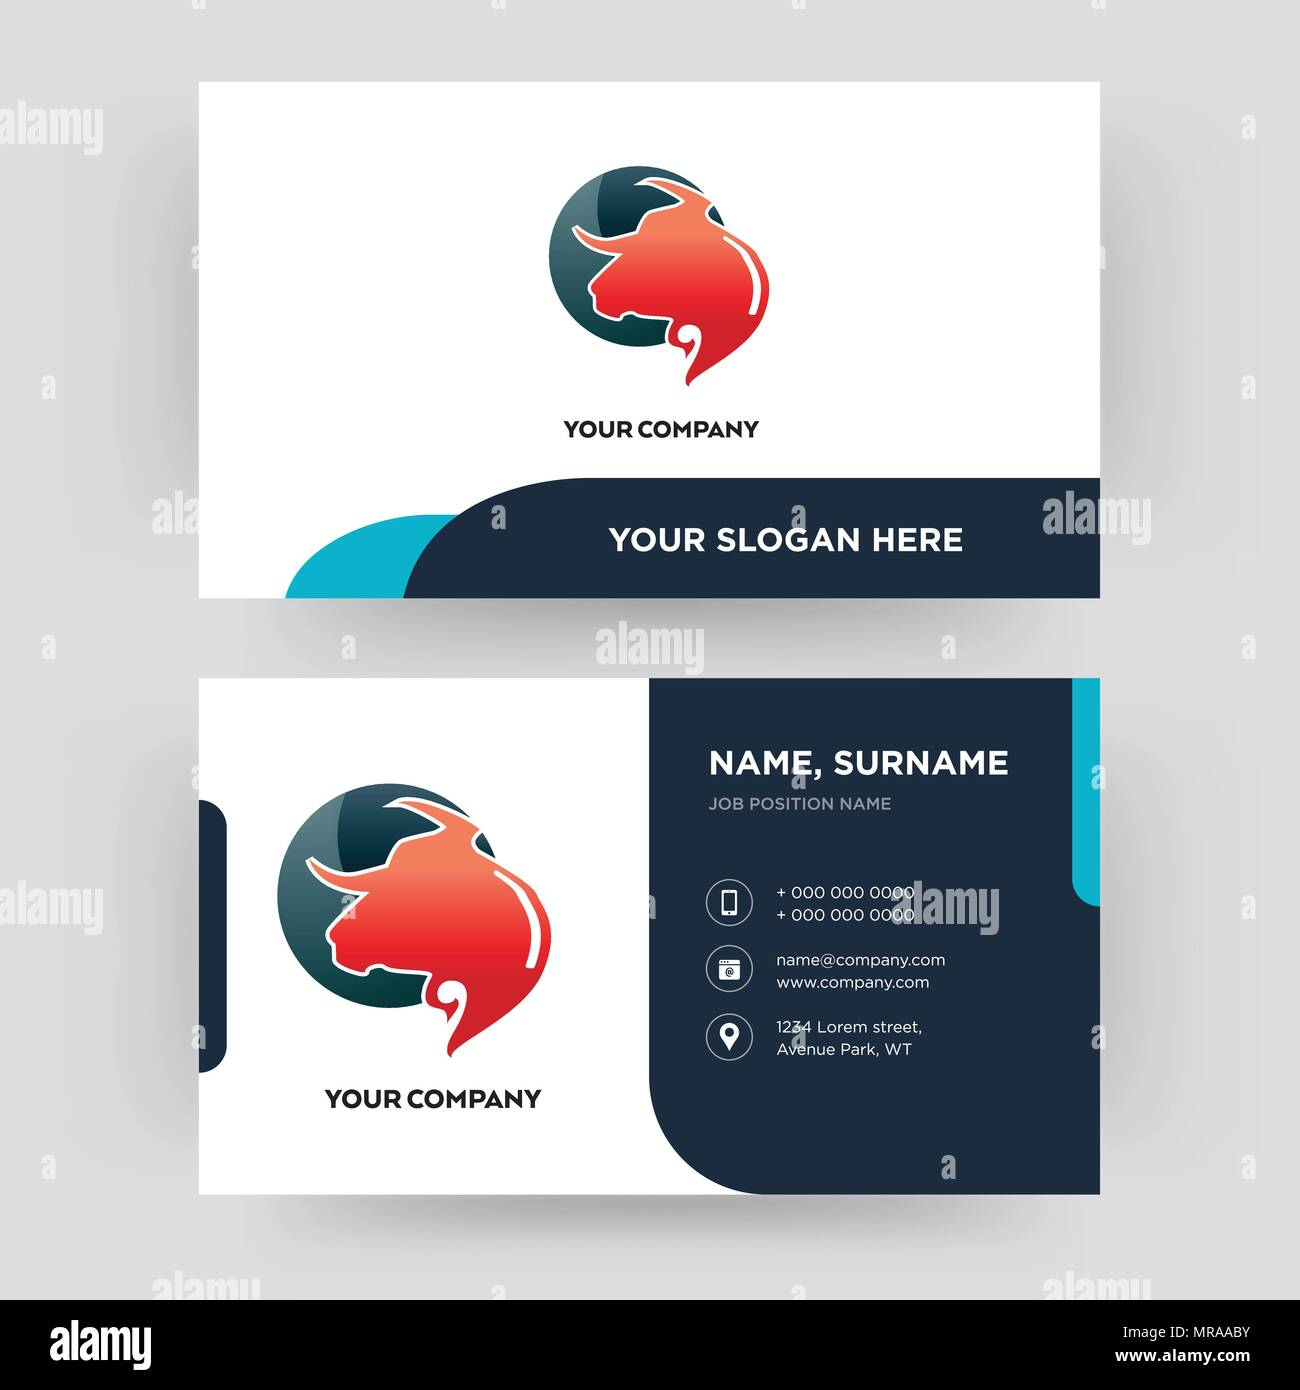 Taurus professional business card design template visiting for taurus professional business card design template visiting for your company modern creative and clean identity card vector wajeb Choice Image